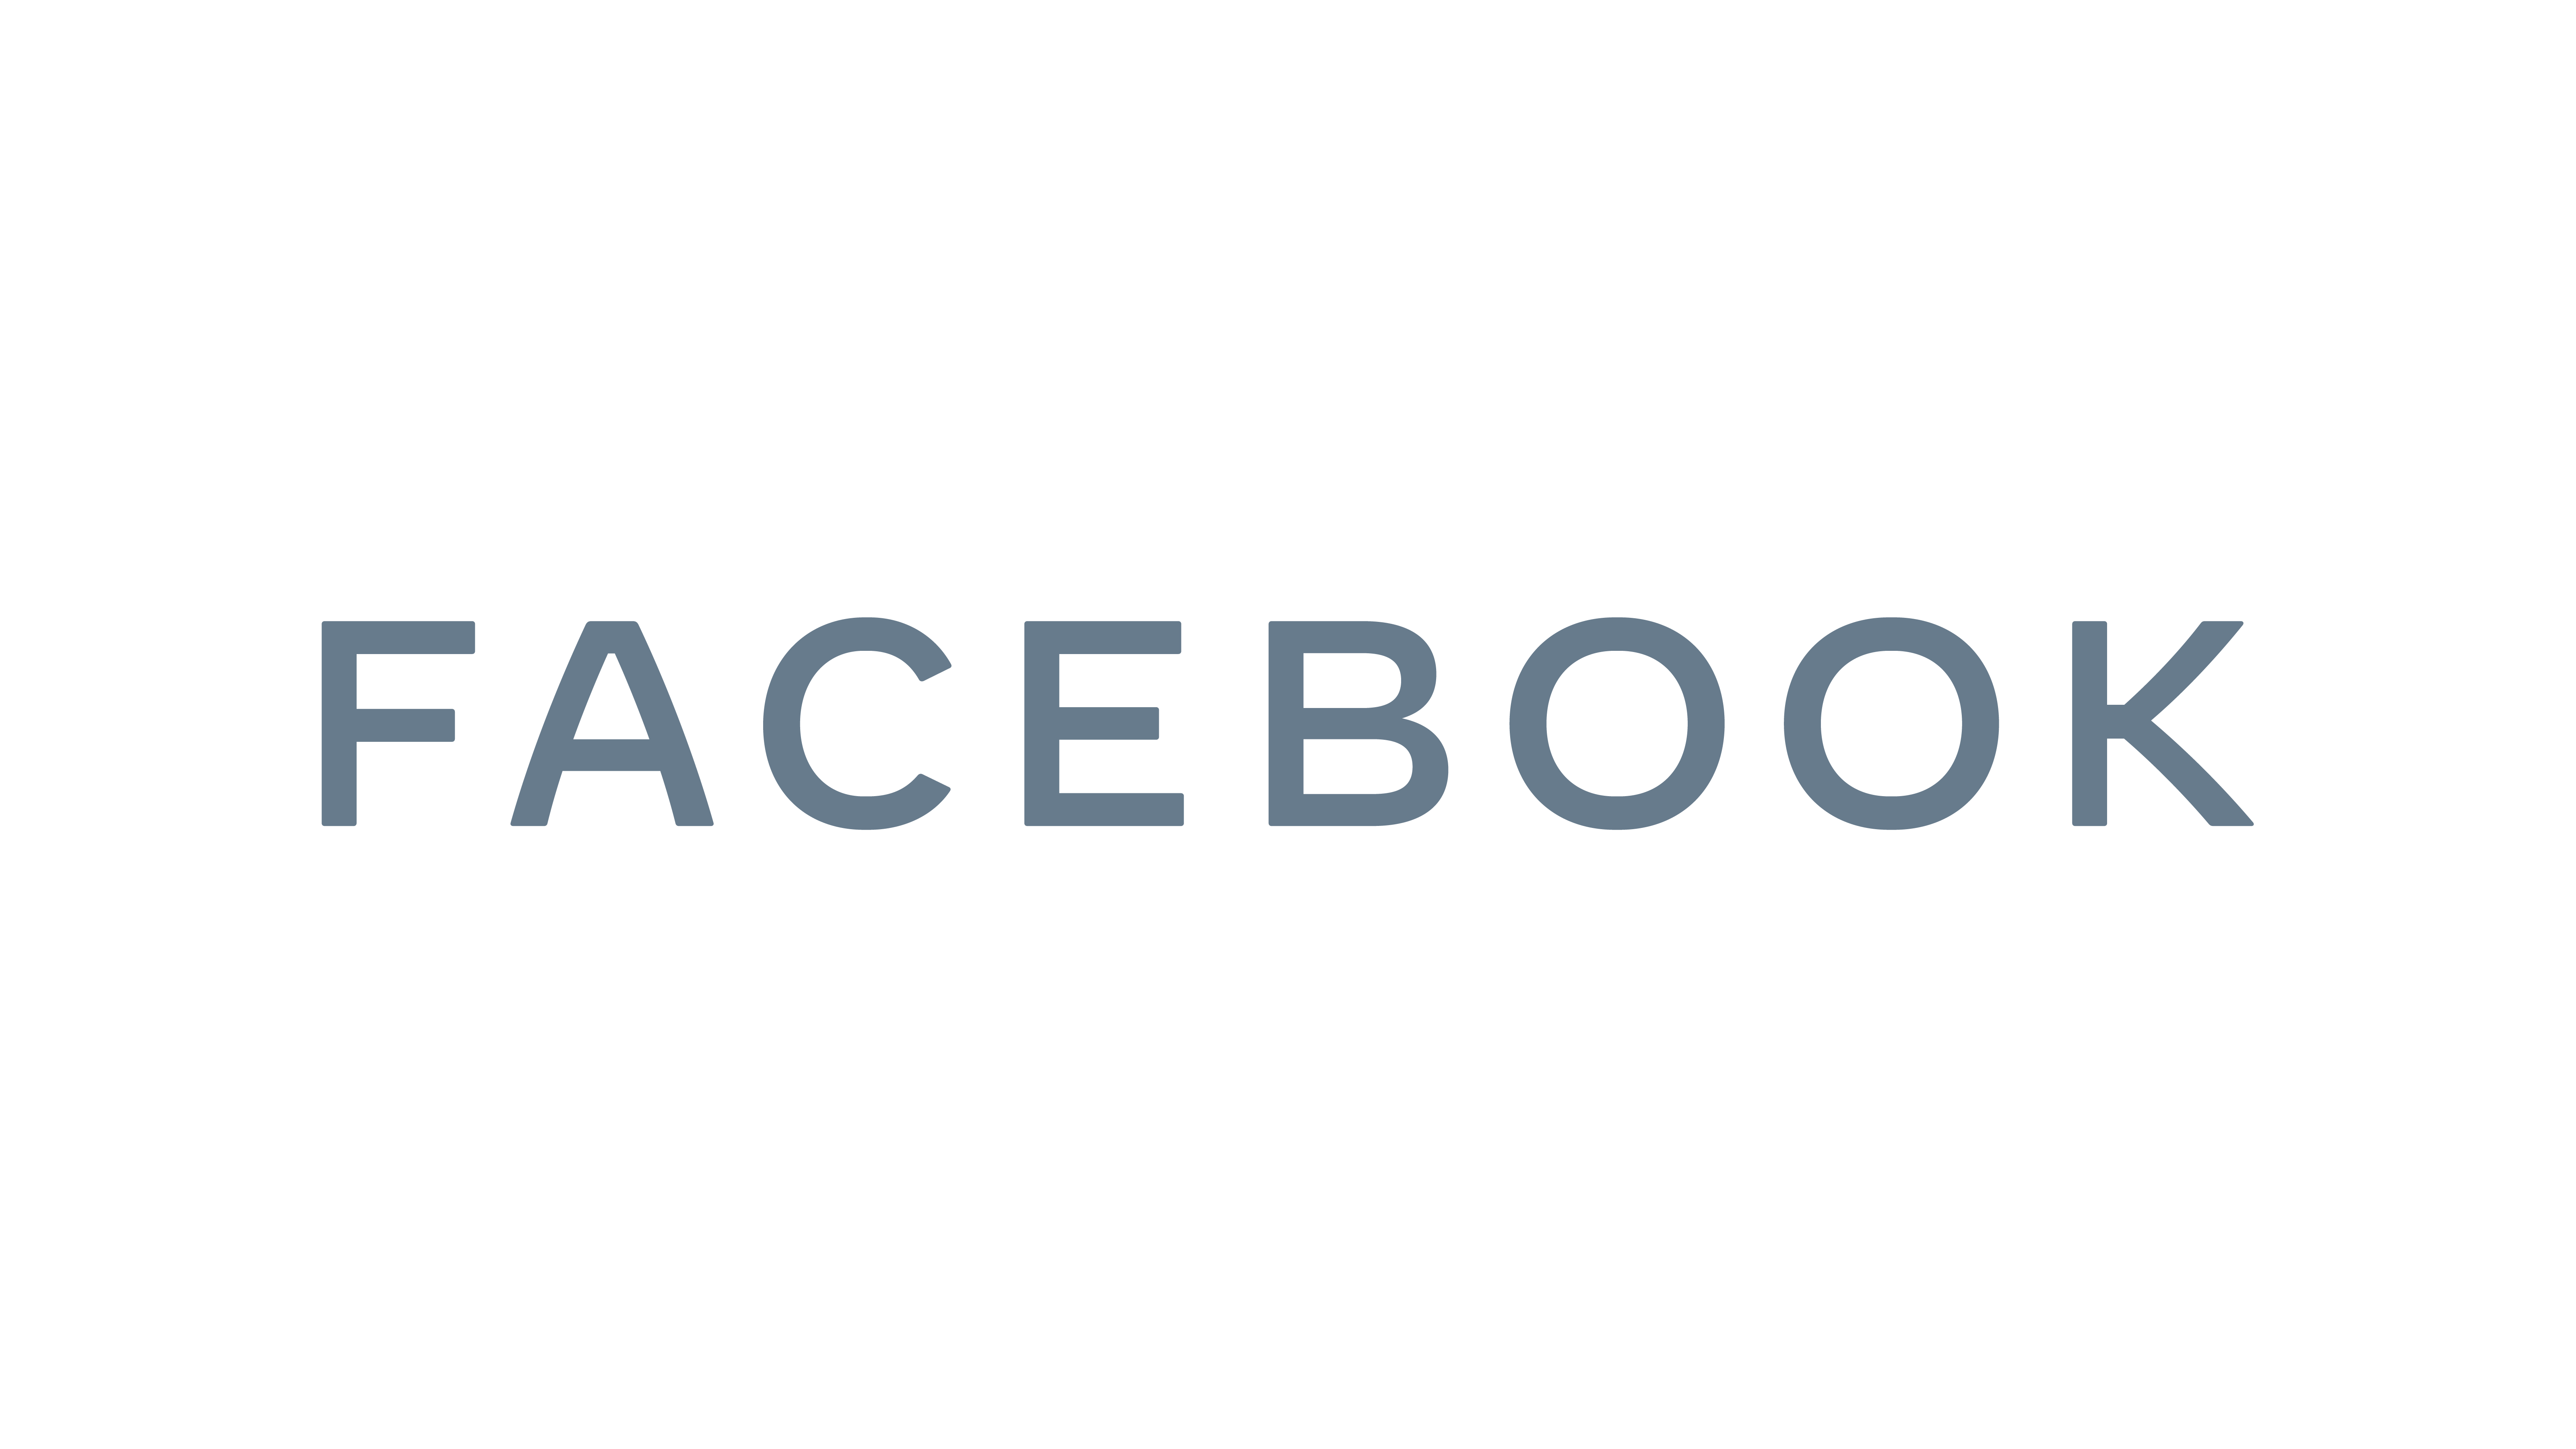 Facebook-Wordmark-Gray-1